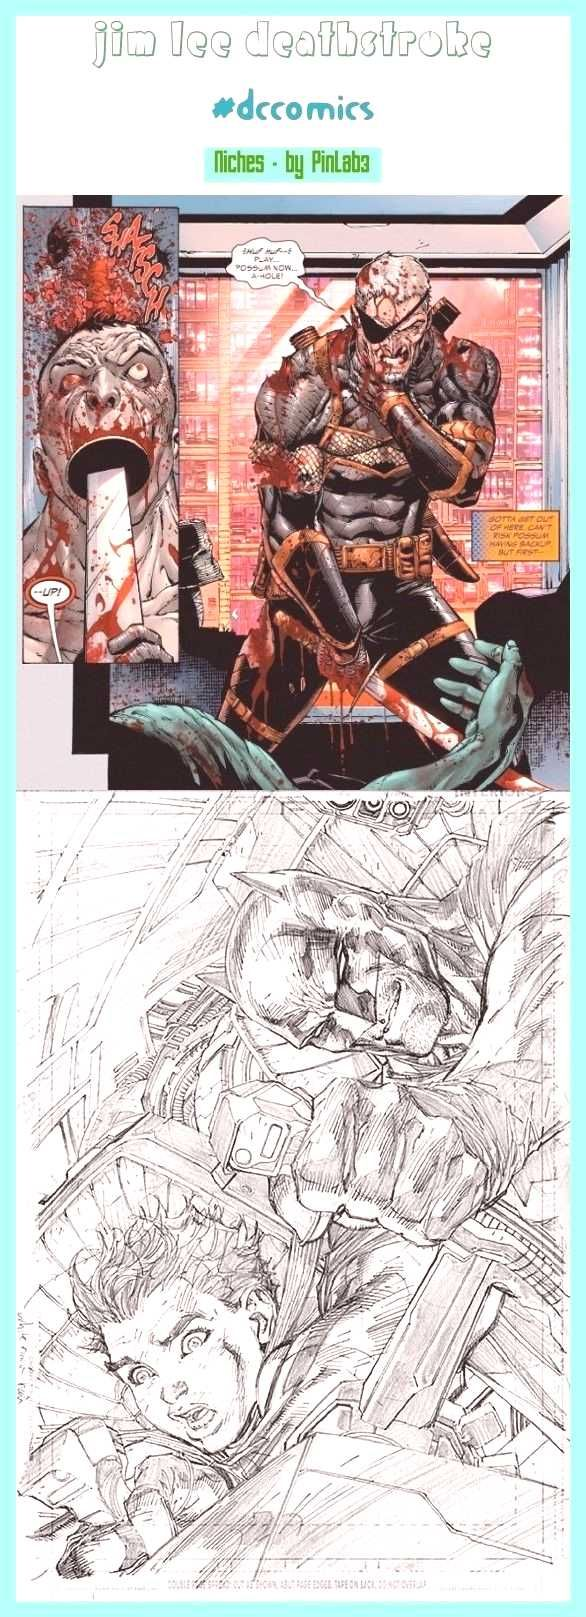 Jim Lee Deathstroke jim lee art, jim lee sketch, jim lee joker, ...You can find Deathstroke and mor